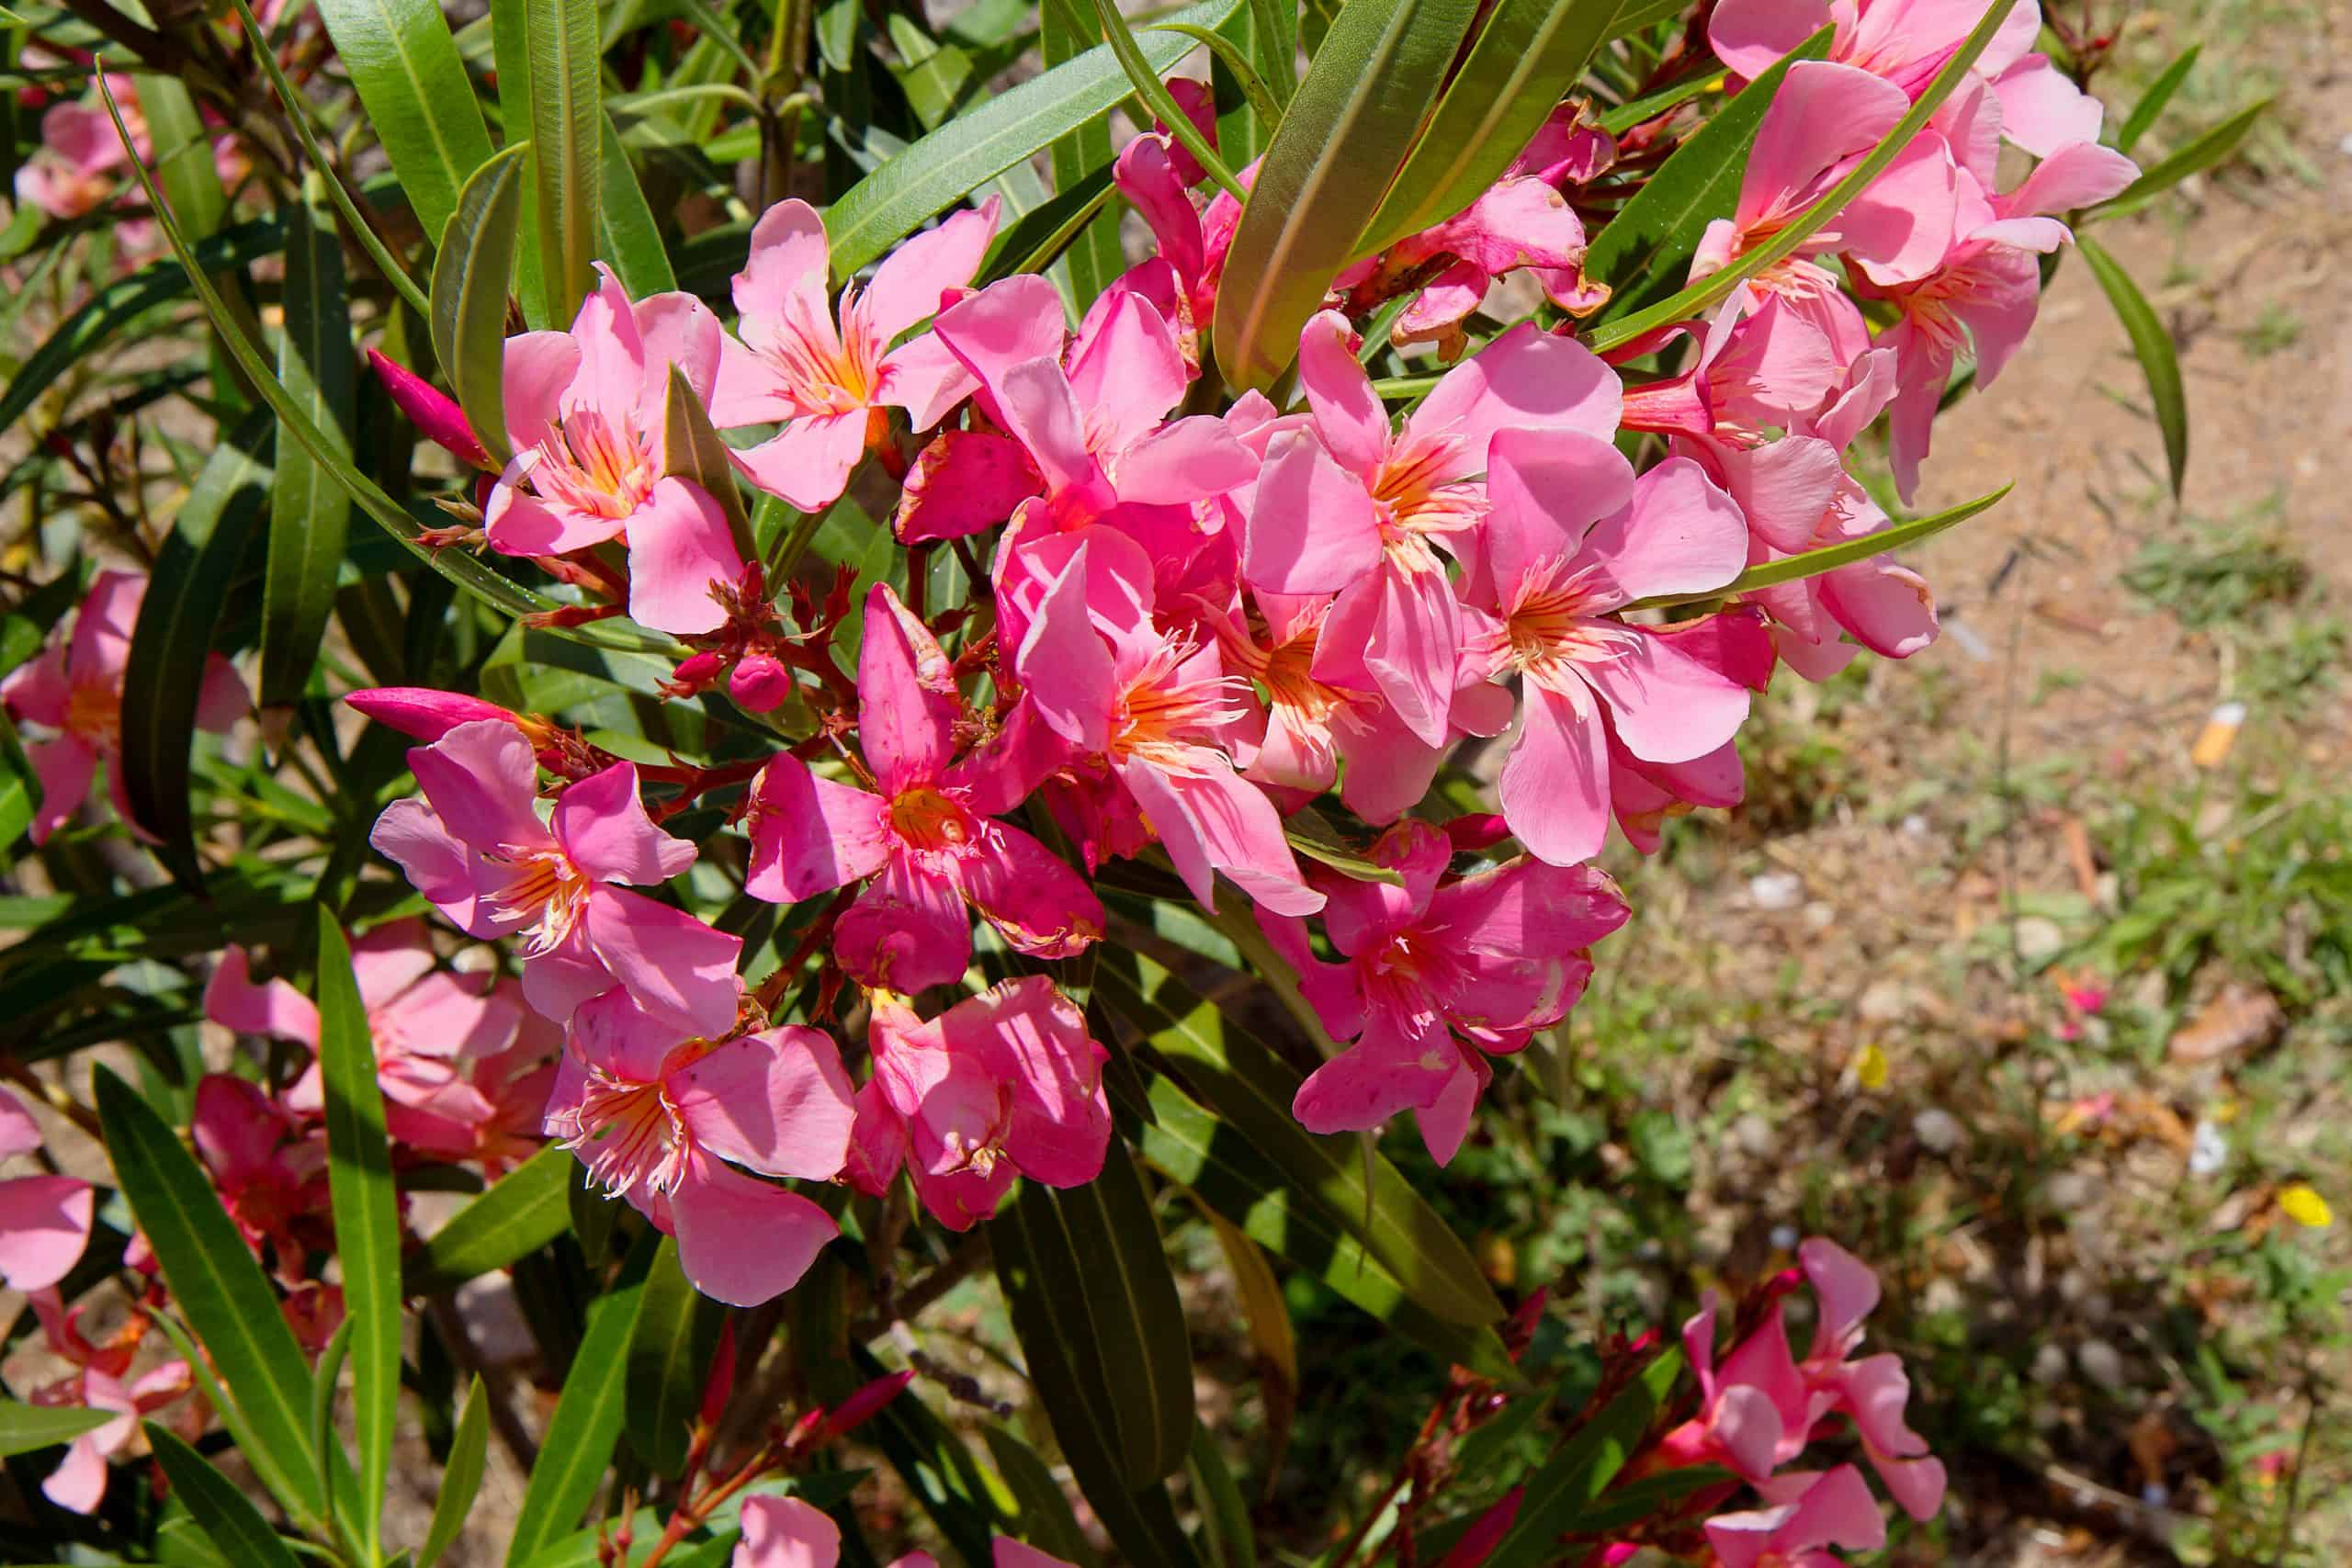 Oleander - flowering shrub, widely distributed in subtropical regions of the world.